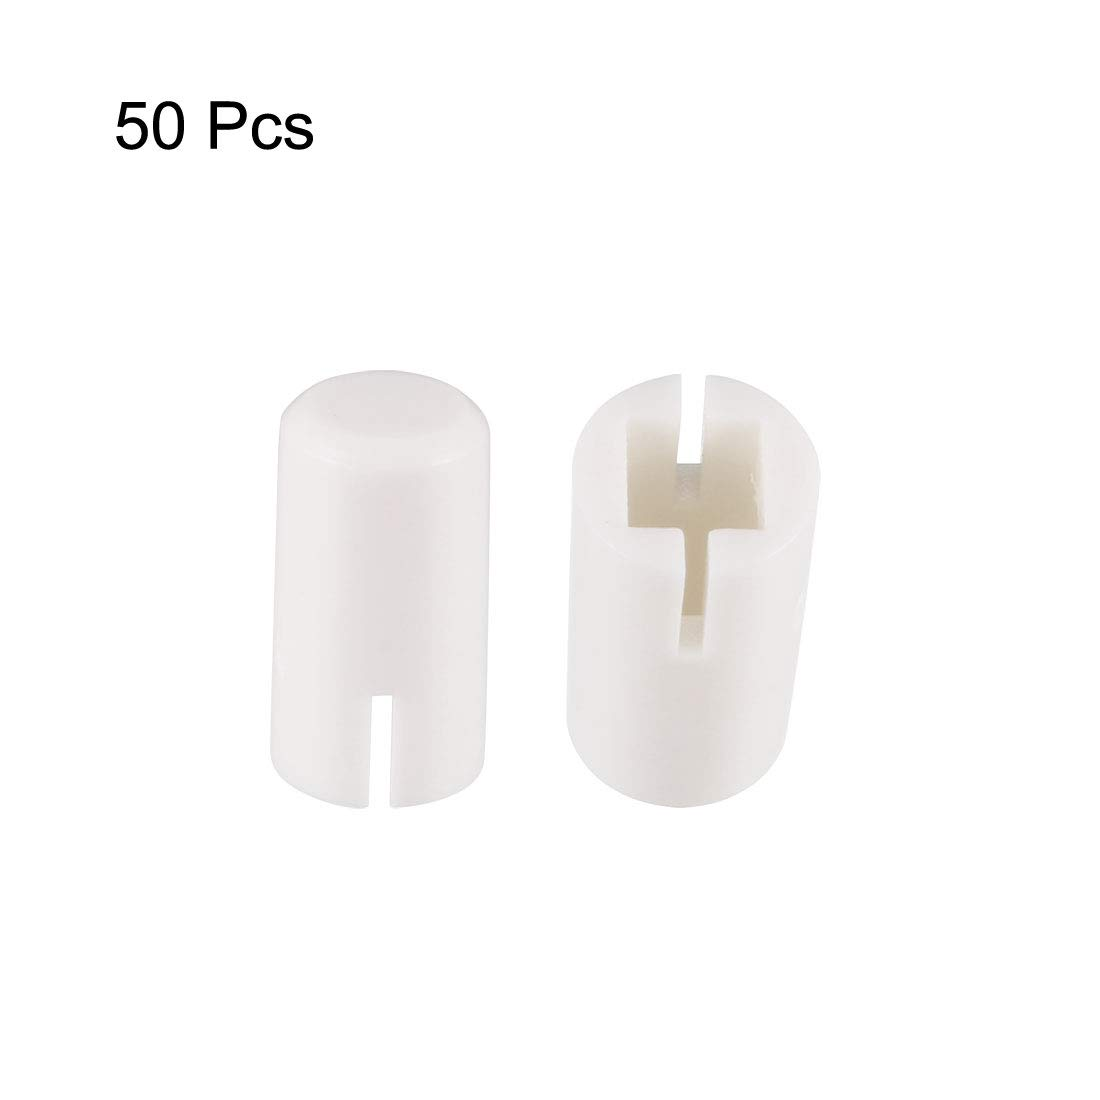 uxcell 20Pcs Plastic 9.3x5.6mm Pushbutton Tactile Switch Caps Cover Keycaps White for 6x6x7.3mm Tact Switch